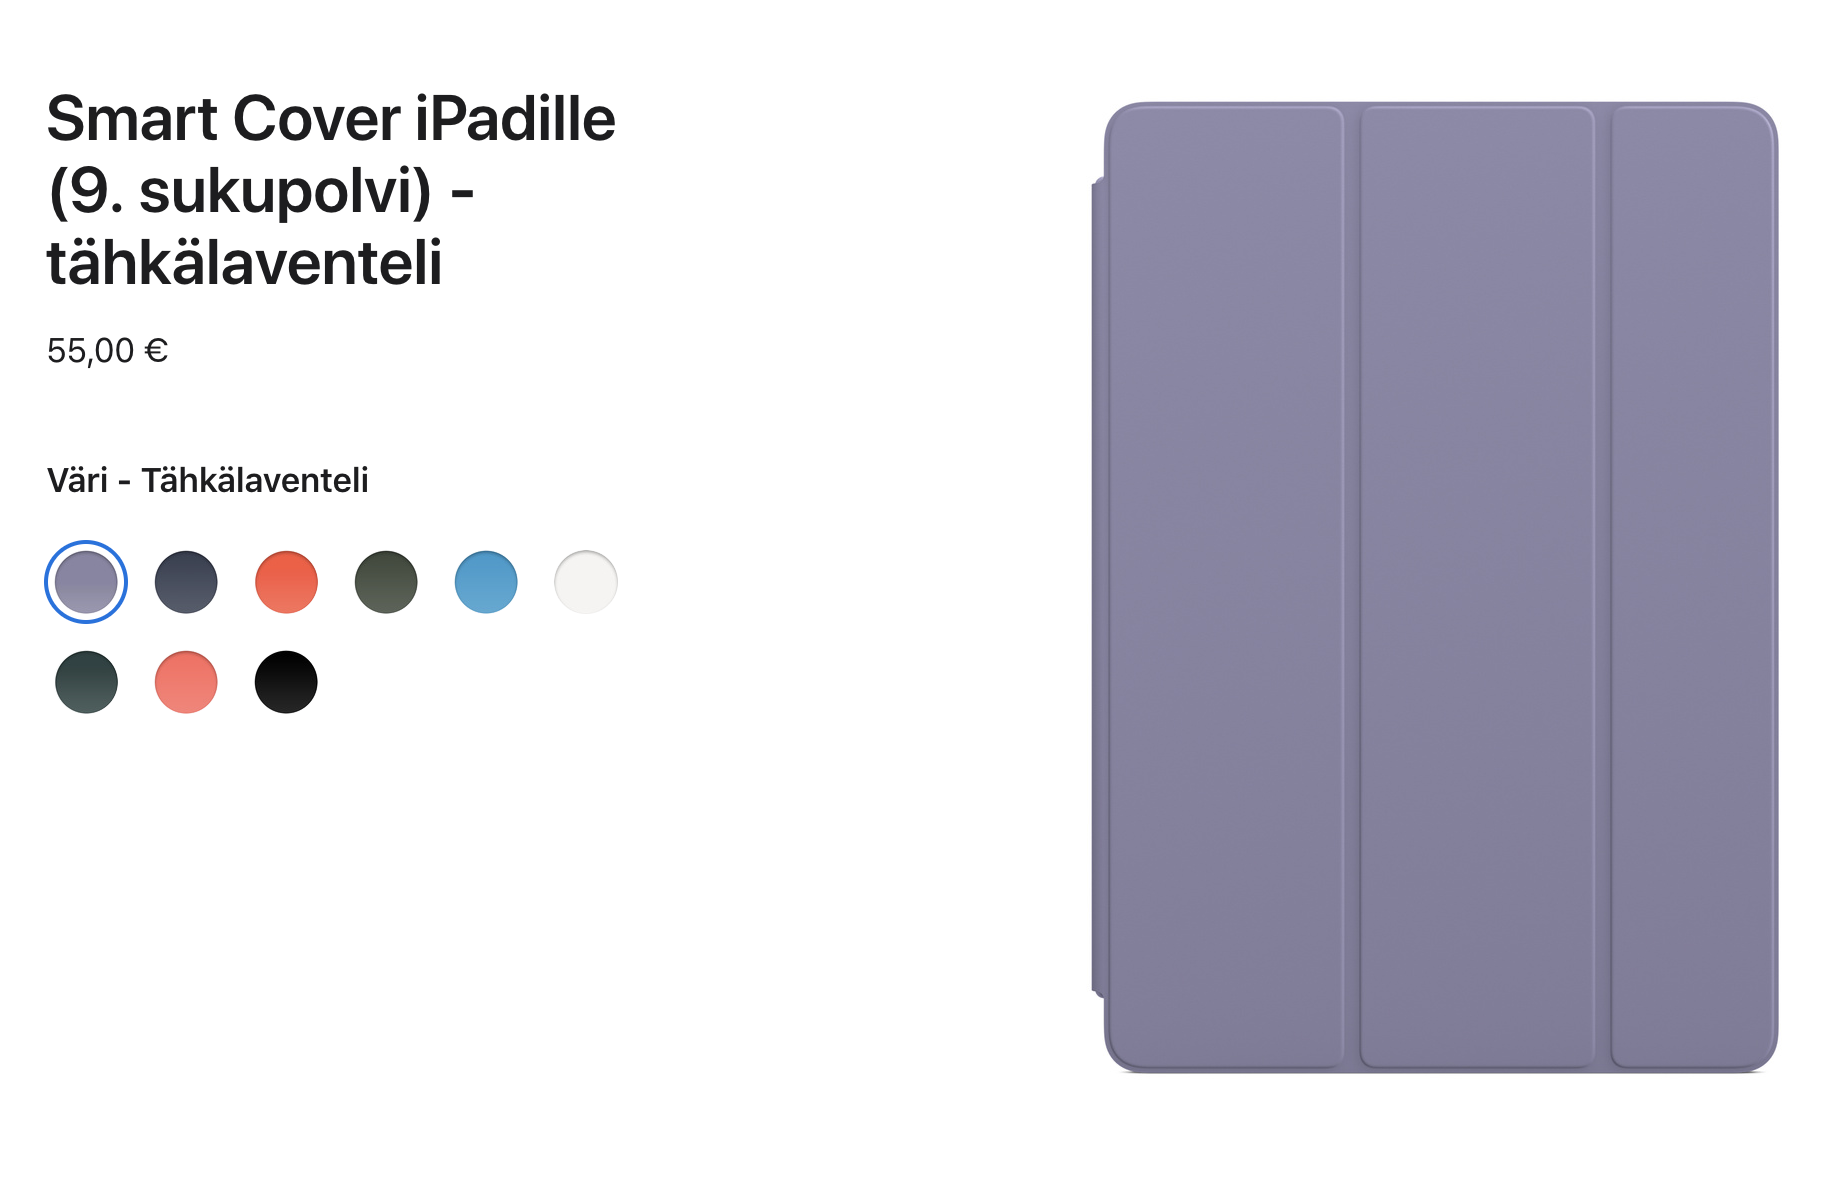 Smart Cover 9. sukupolven iPadille.